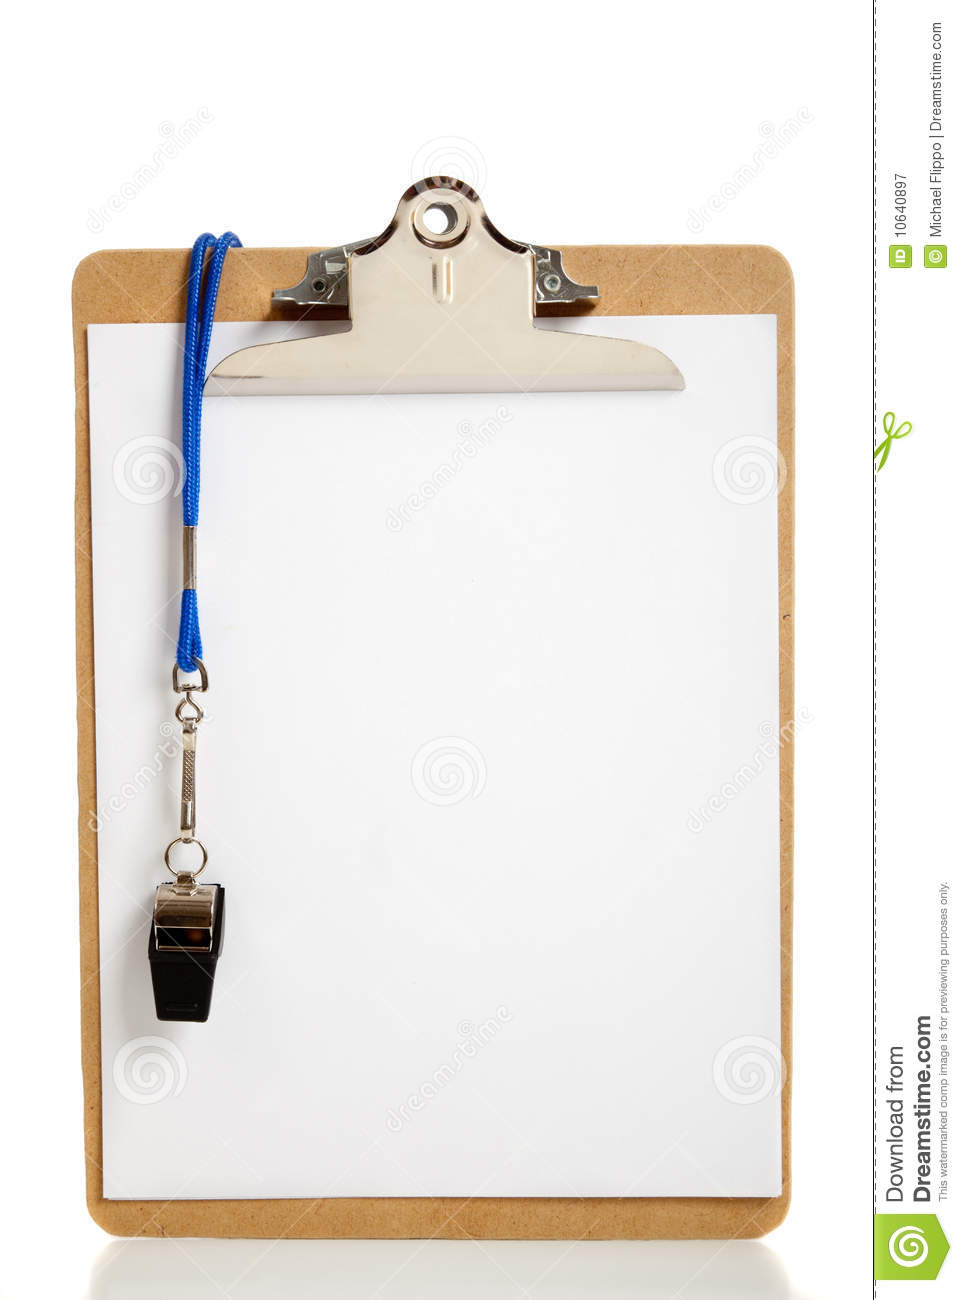 Blank Clipboard And Coaches Whistle Royalty Free Stock Photography ...